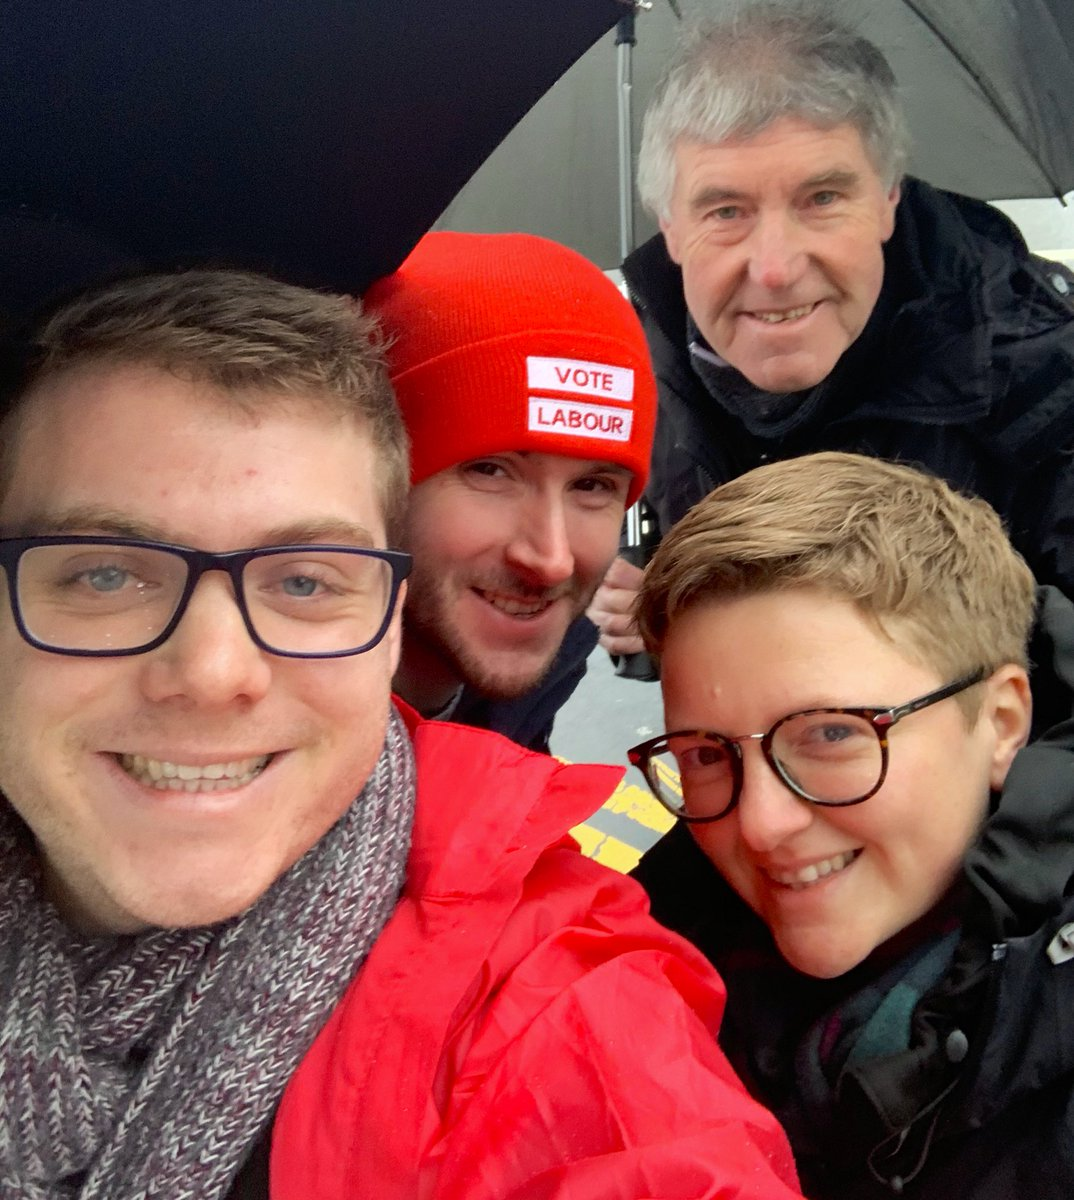 It's cold and wet but we're helping re-elect James Frith in Bury North! Vote Labour 😍